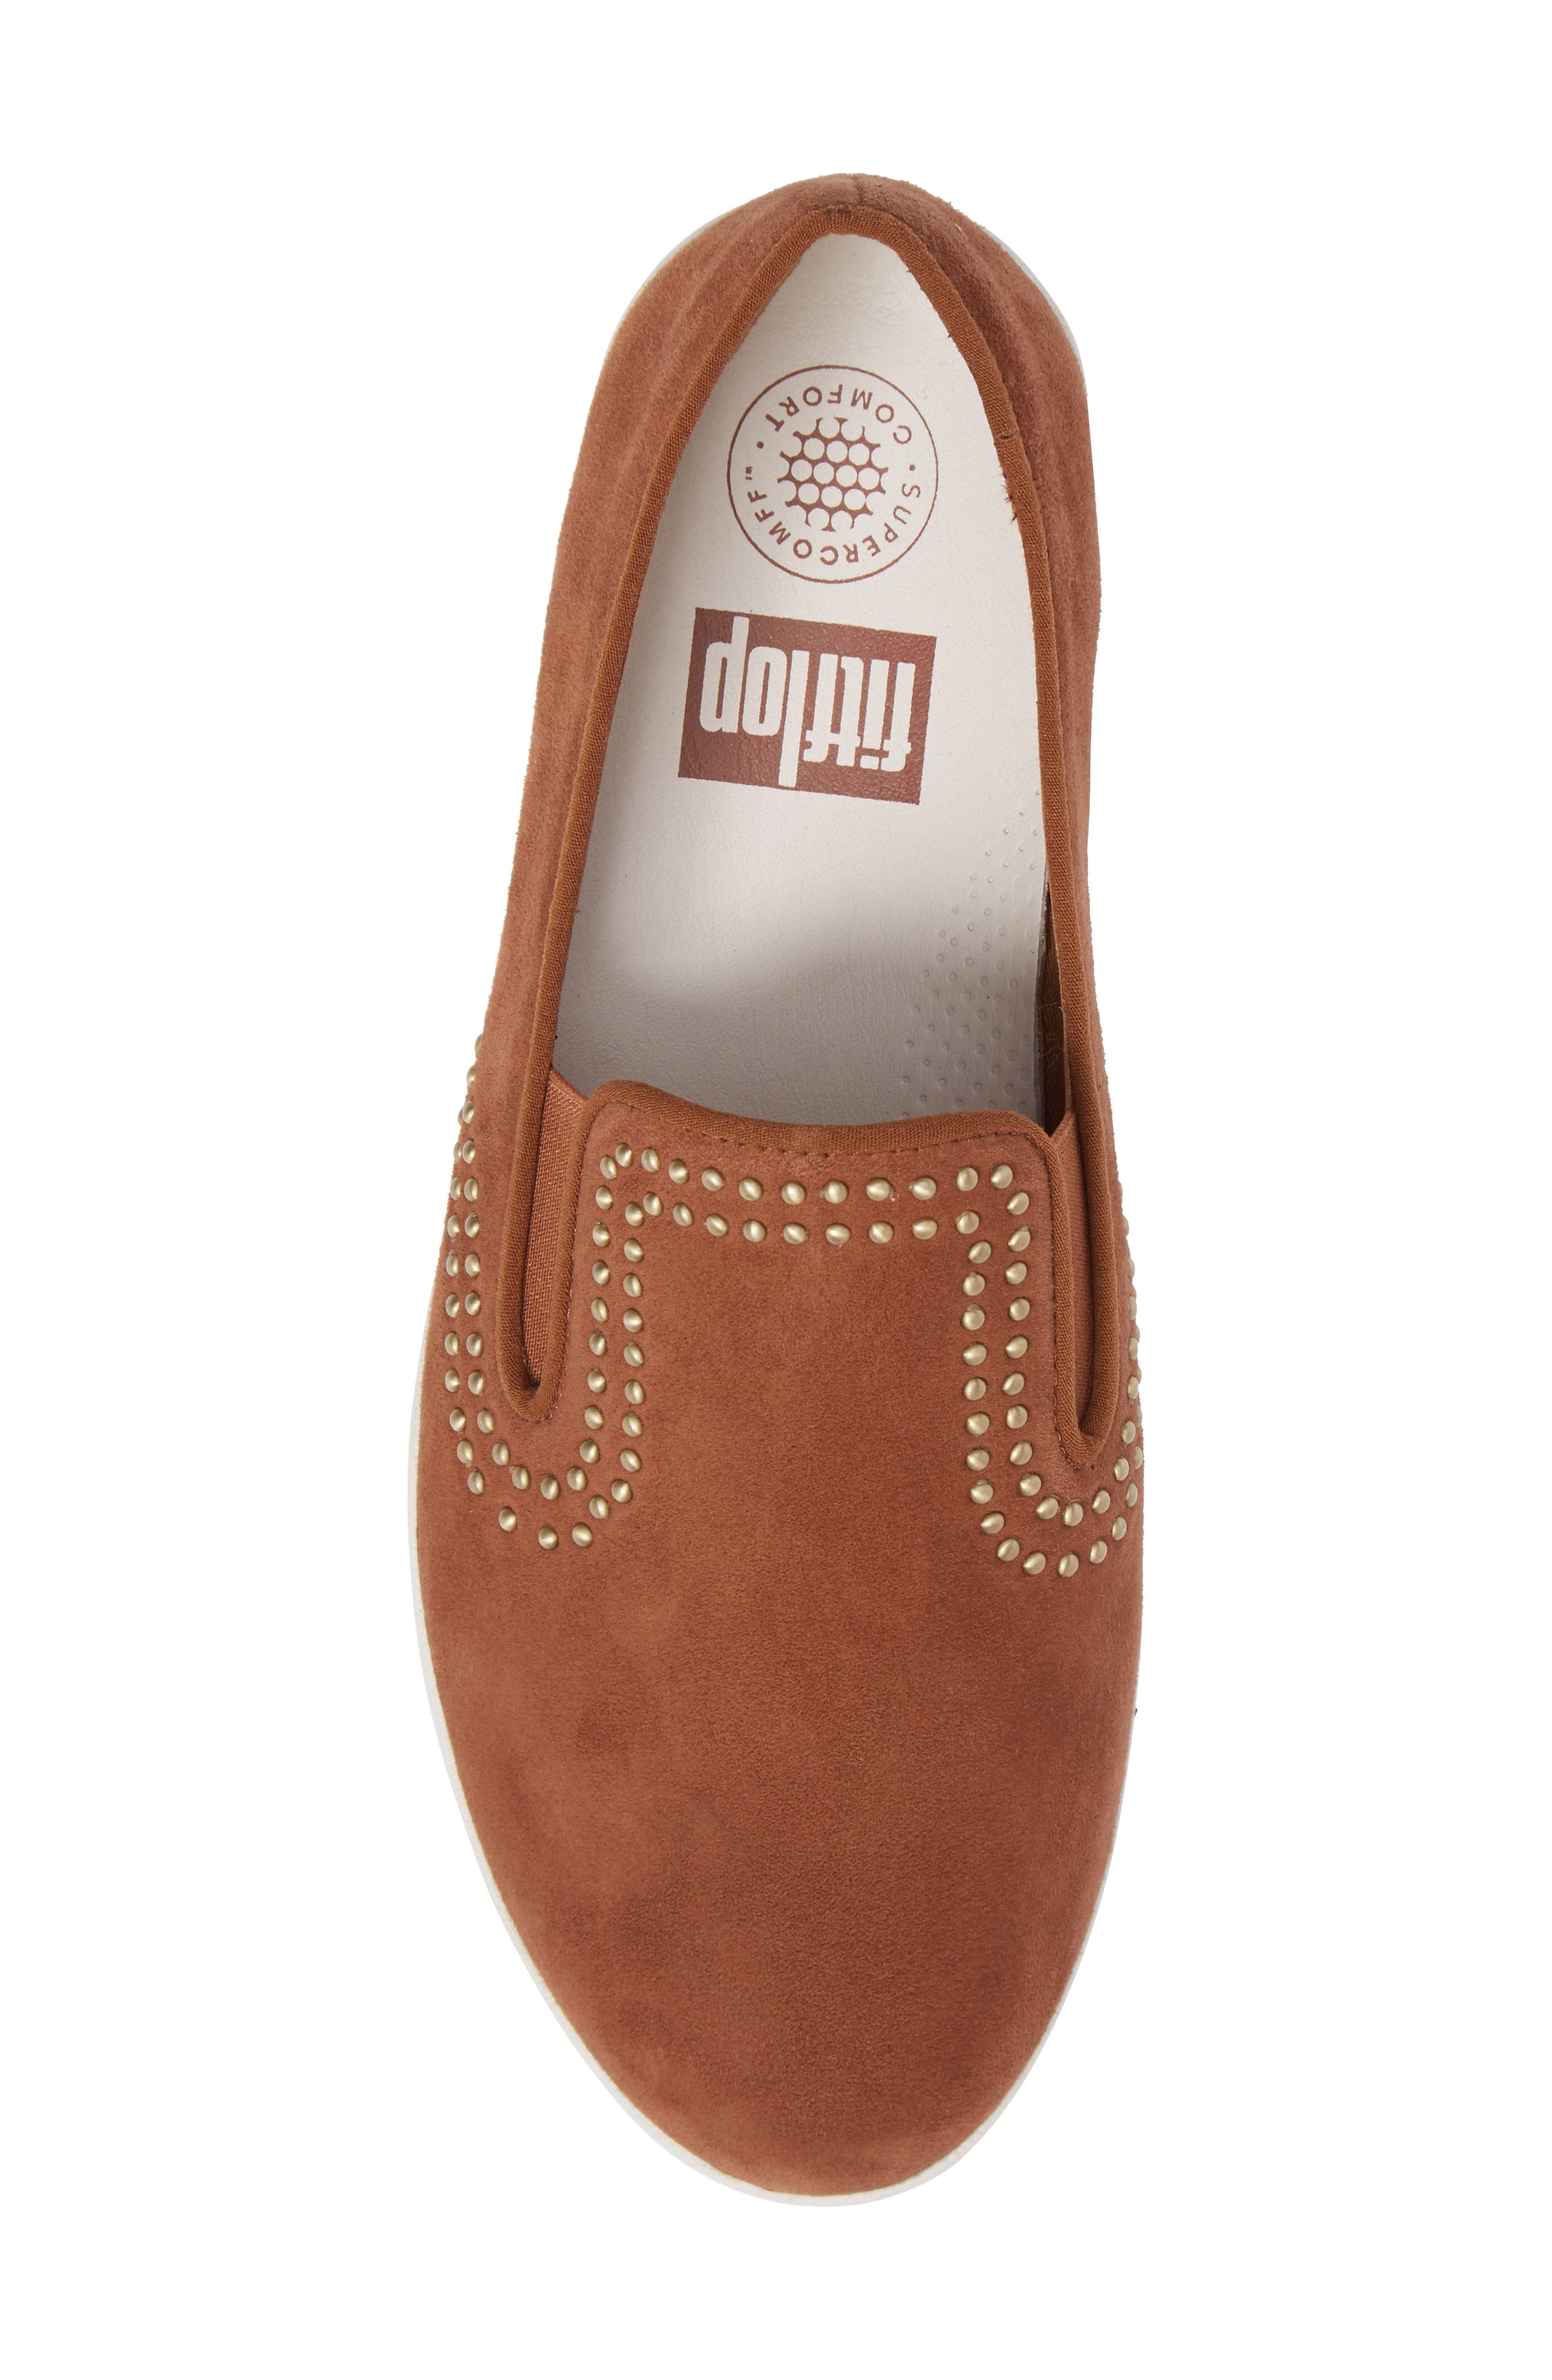 Superskate Studded Wedge Loafer,                             Alternate thumbnail 5, color,                             250